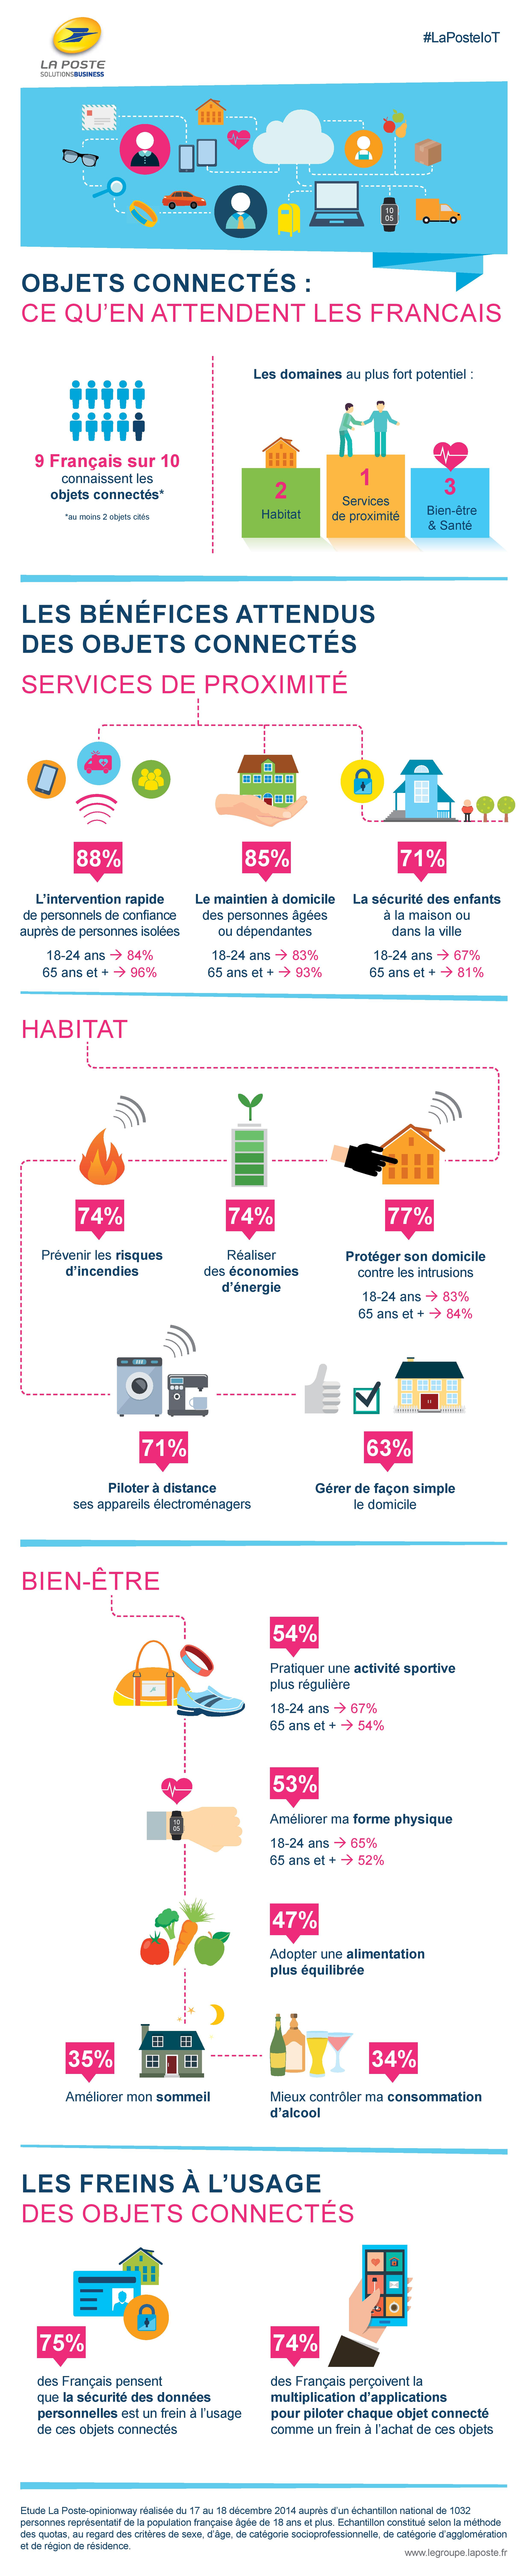 Infographie_LAPOSTE_OC_301214-5.indd-page-001